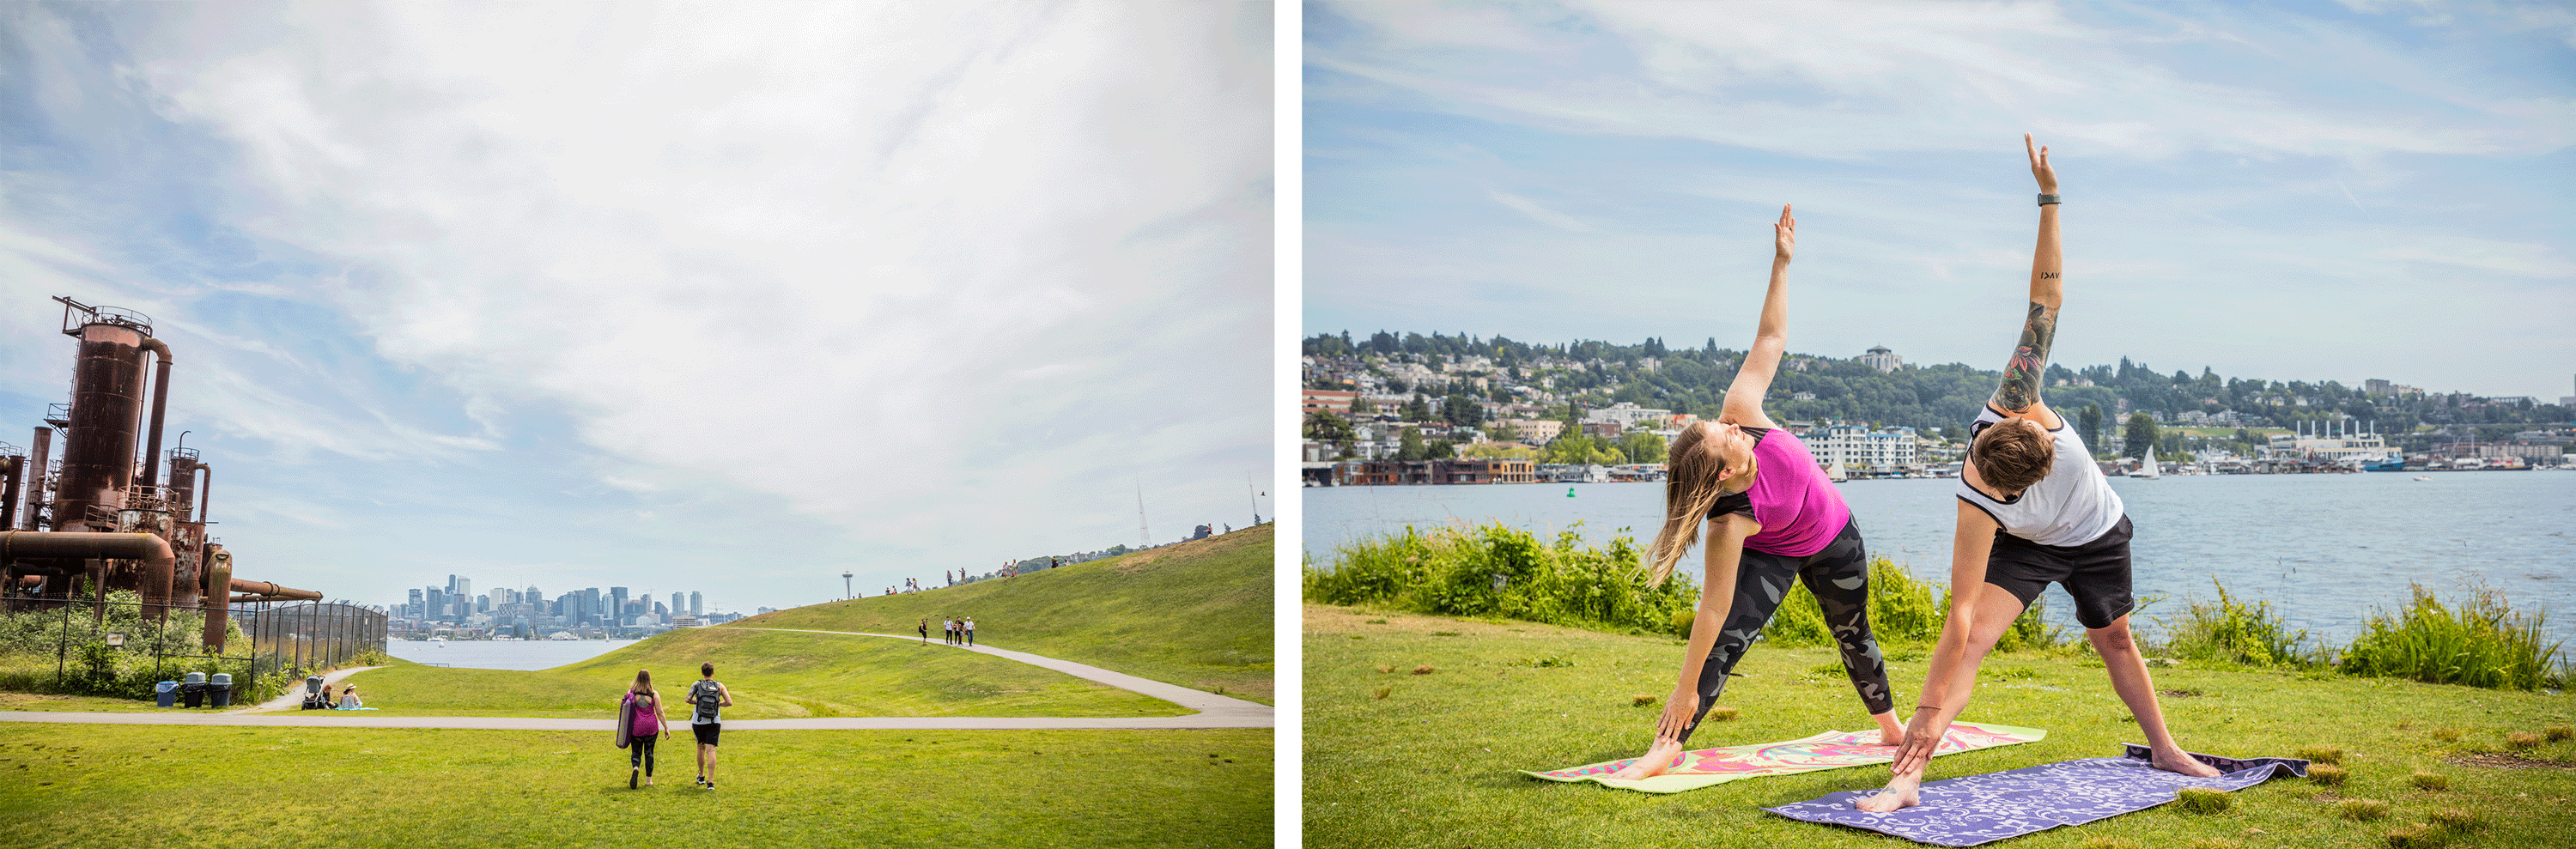 Two images side by side. One of two women walking in a park carrying yoga mats. The other is a photo of the two women with arms stretched out in yoga pose.